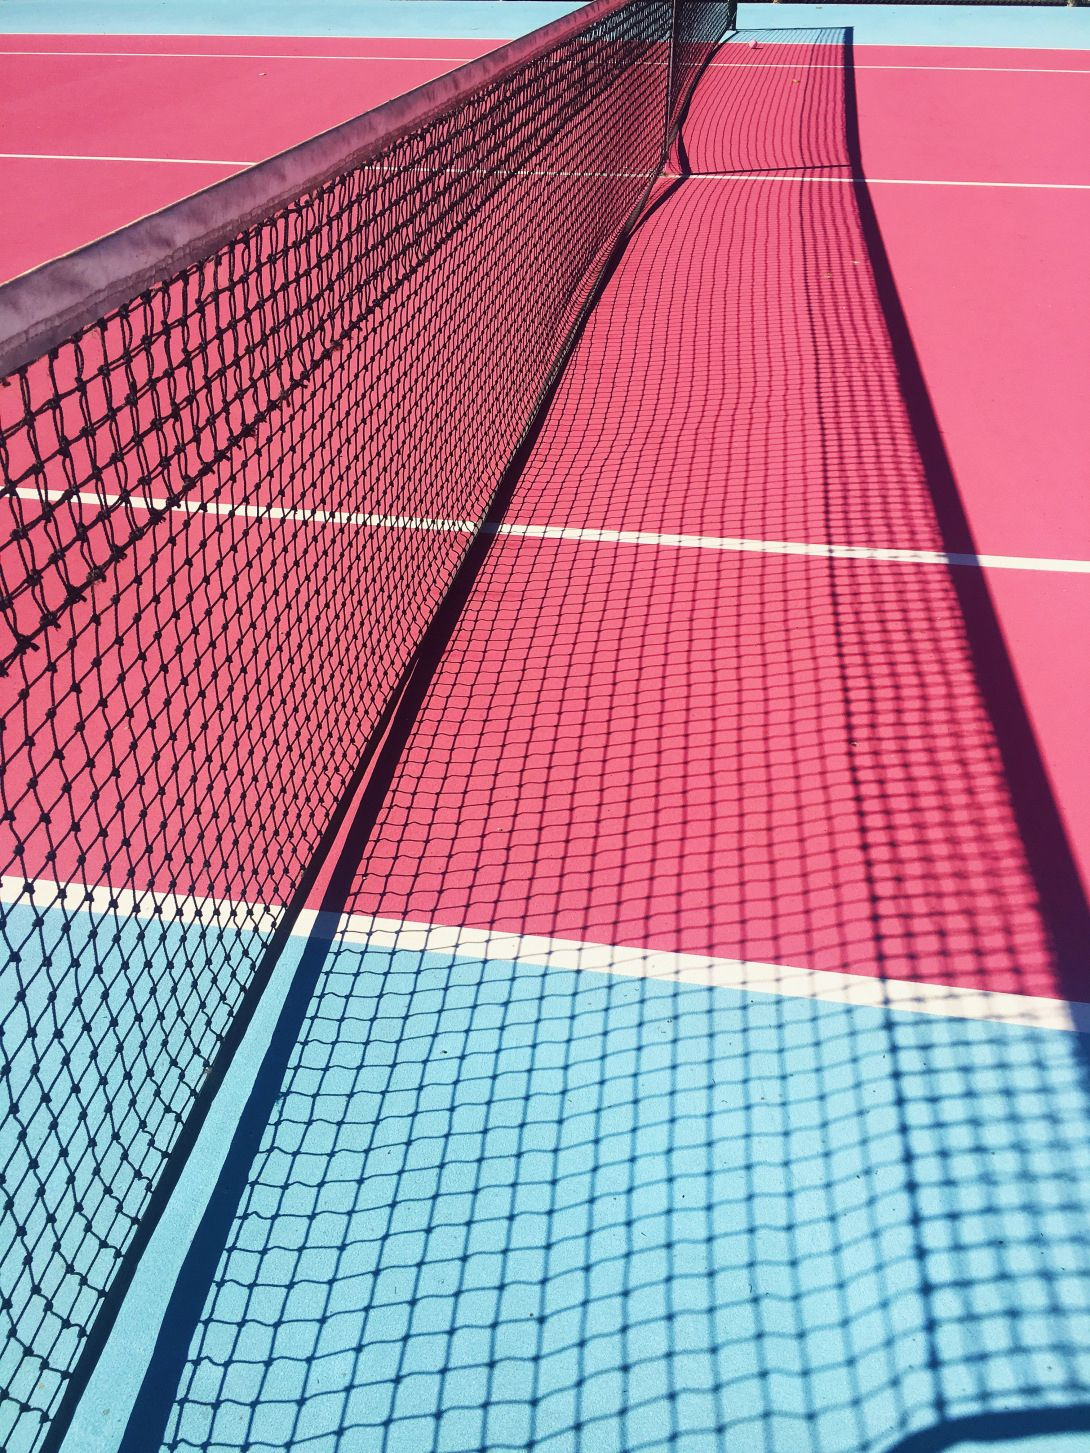 Madonna Inn S Pink And Blue Tennis Court Tennis Wallpaper Tennis Court Photoshoot Tennis Fashion